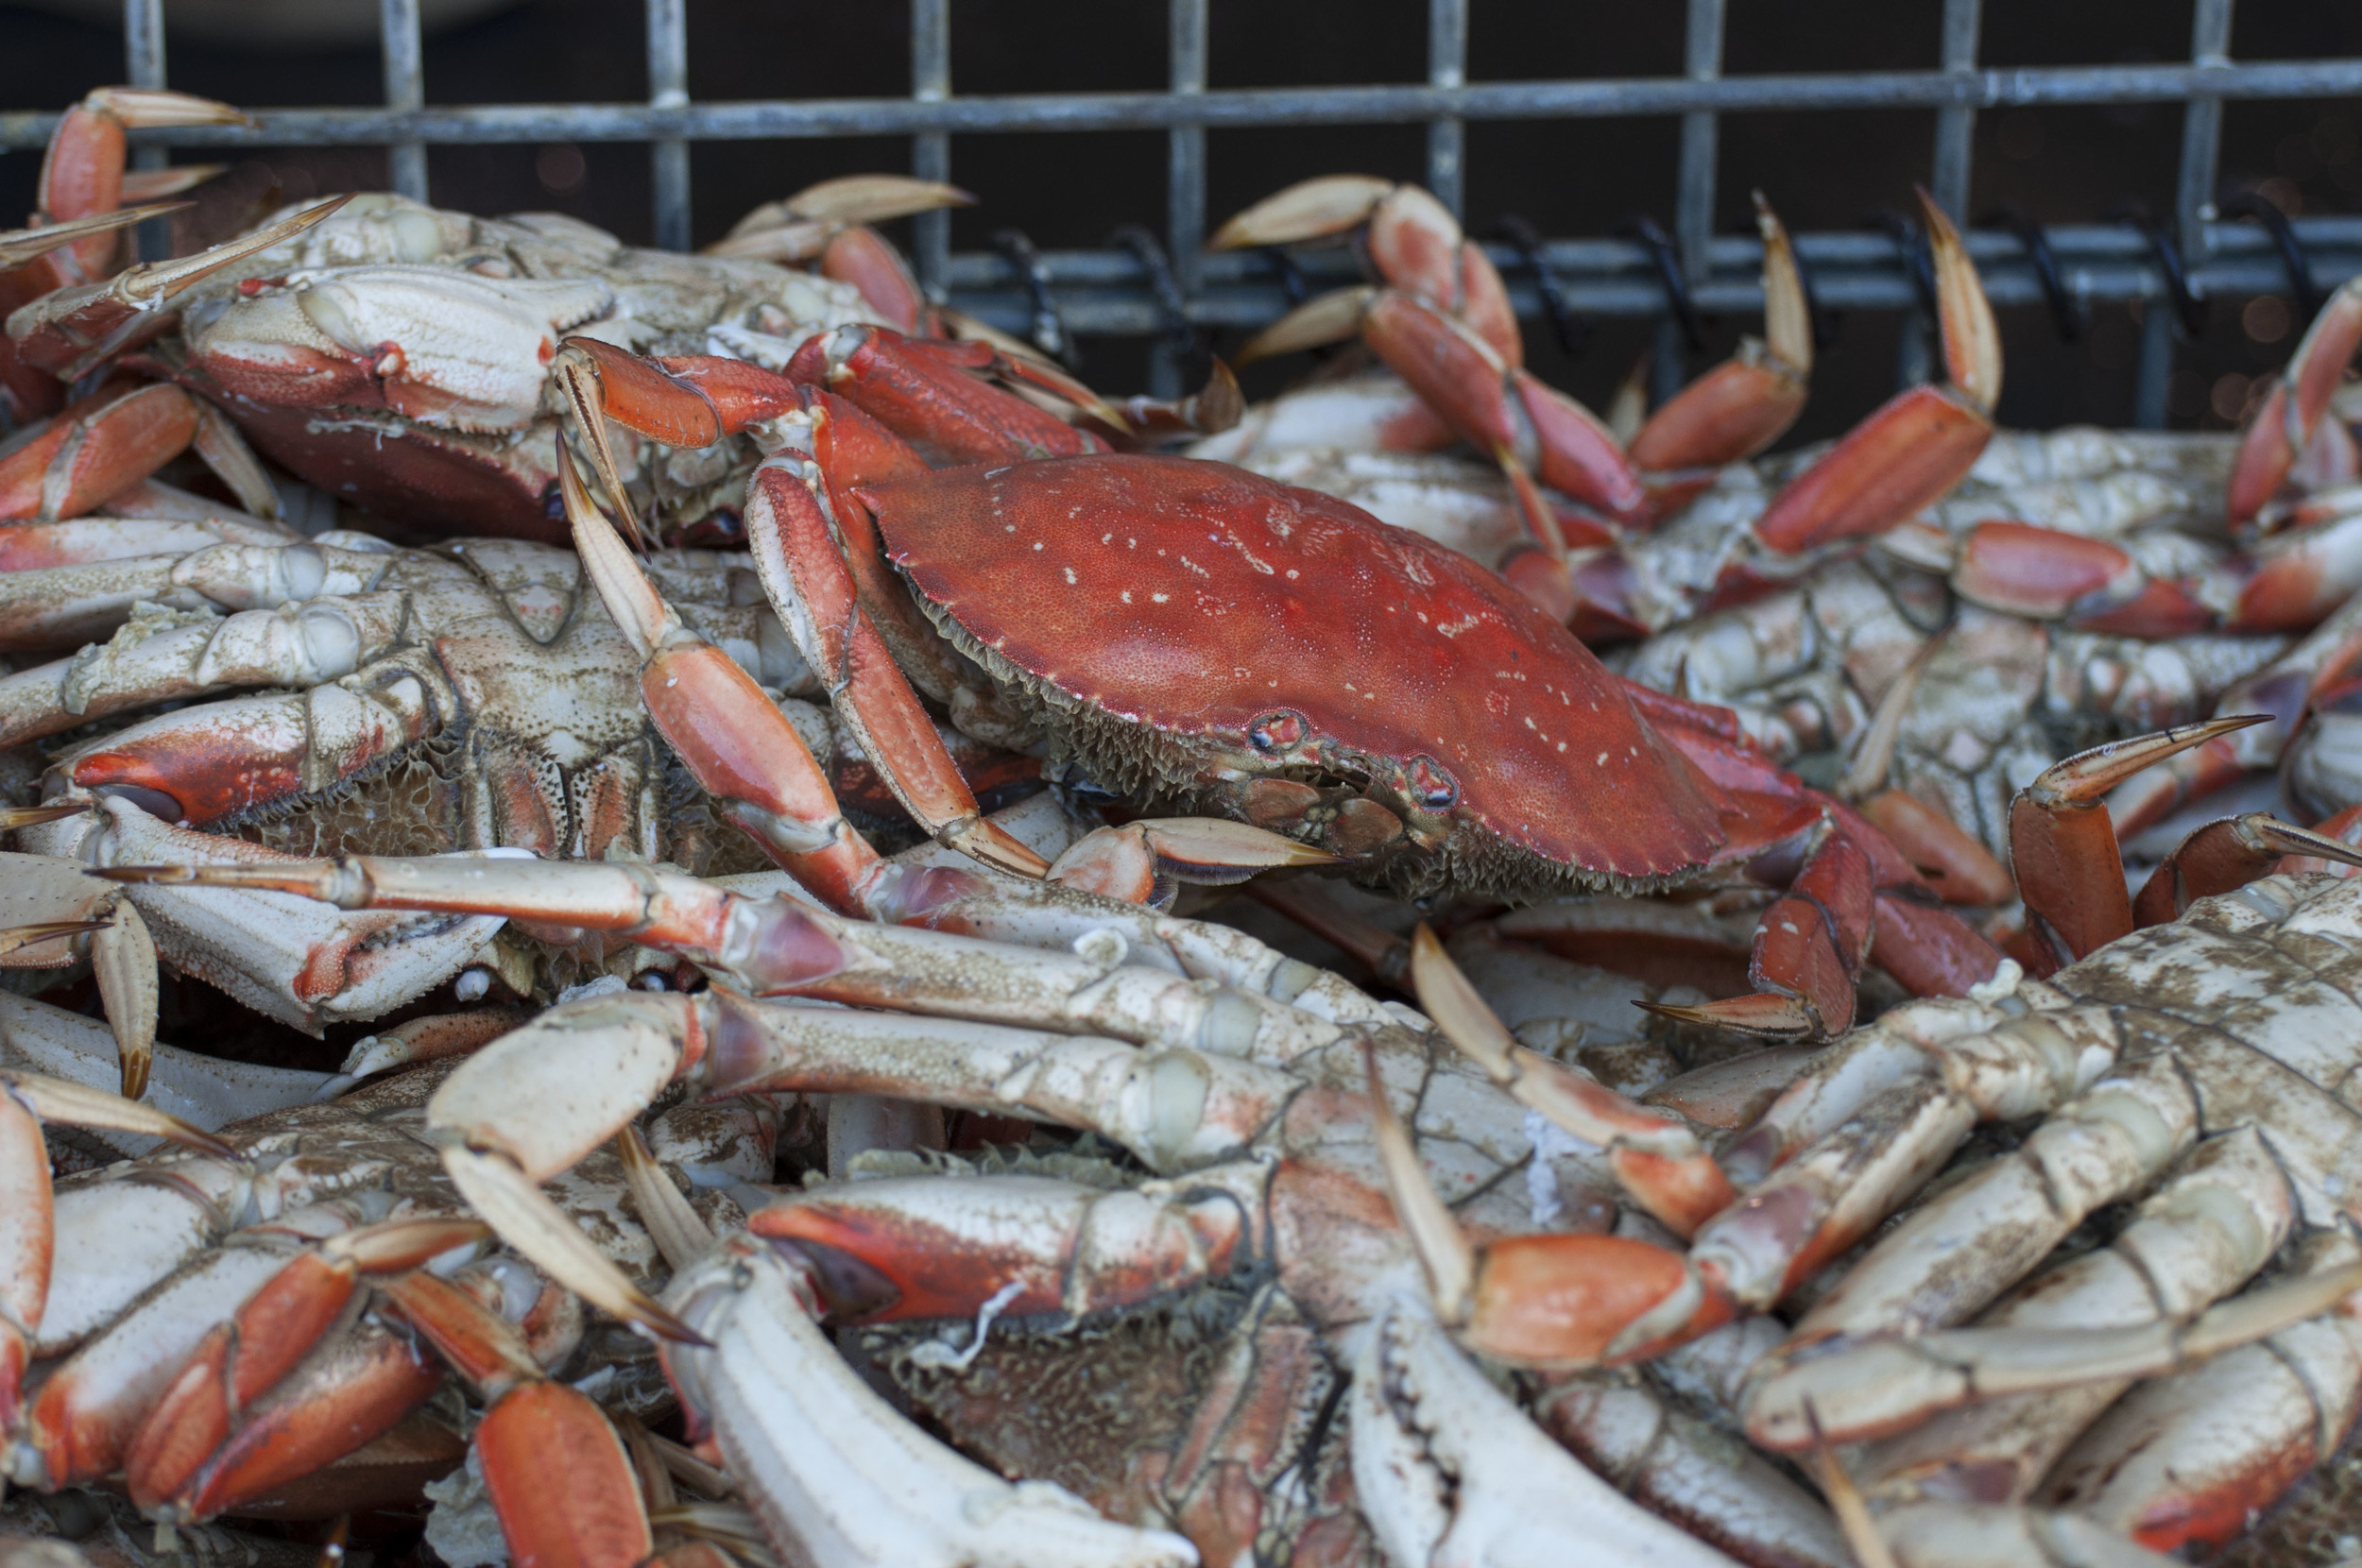 2013-Oct9-PezzoloSeafood-02.jpg